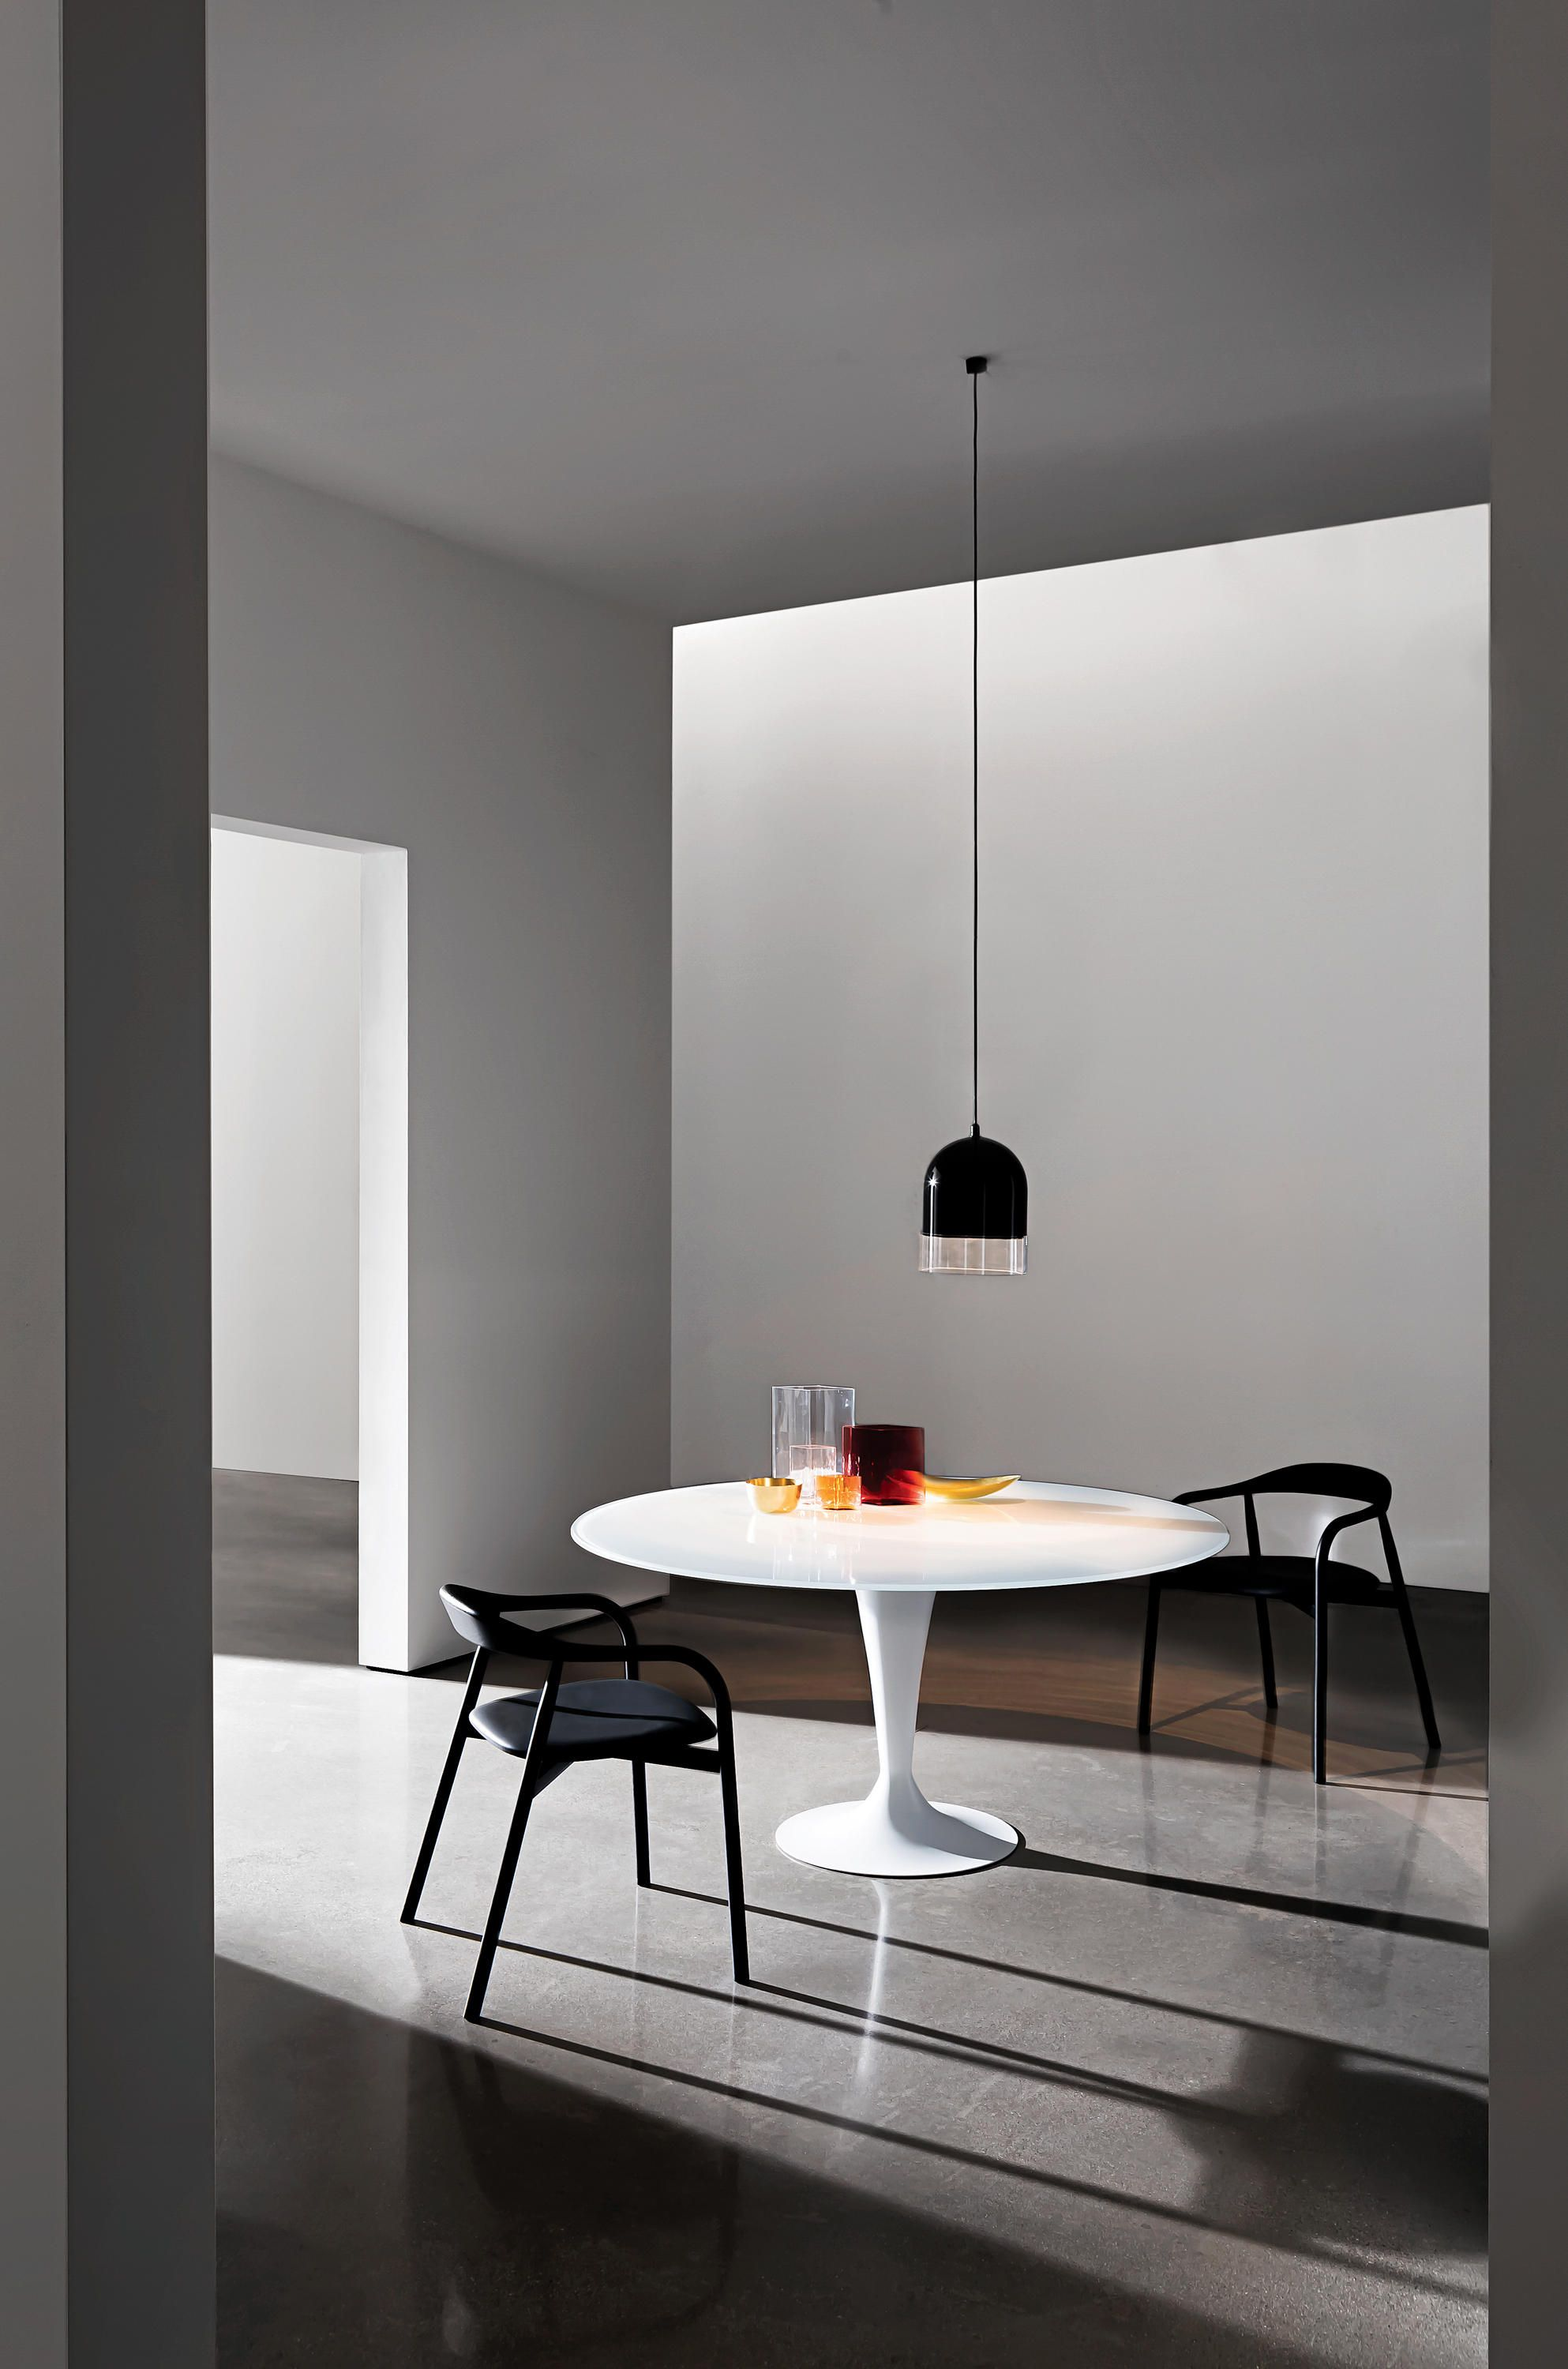 Dining Table With Chromed Or Lacquered Met  Al Base, Different Finishes.  Top Available In Tempered Glass, MATERIA, Ceramic Or Wood, Various  Finishes. Ø..